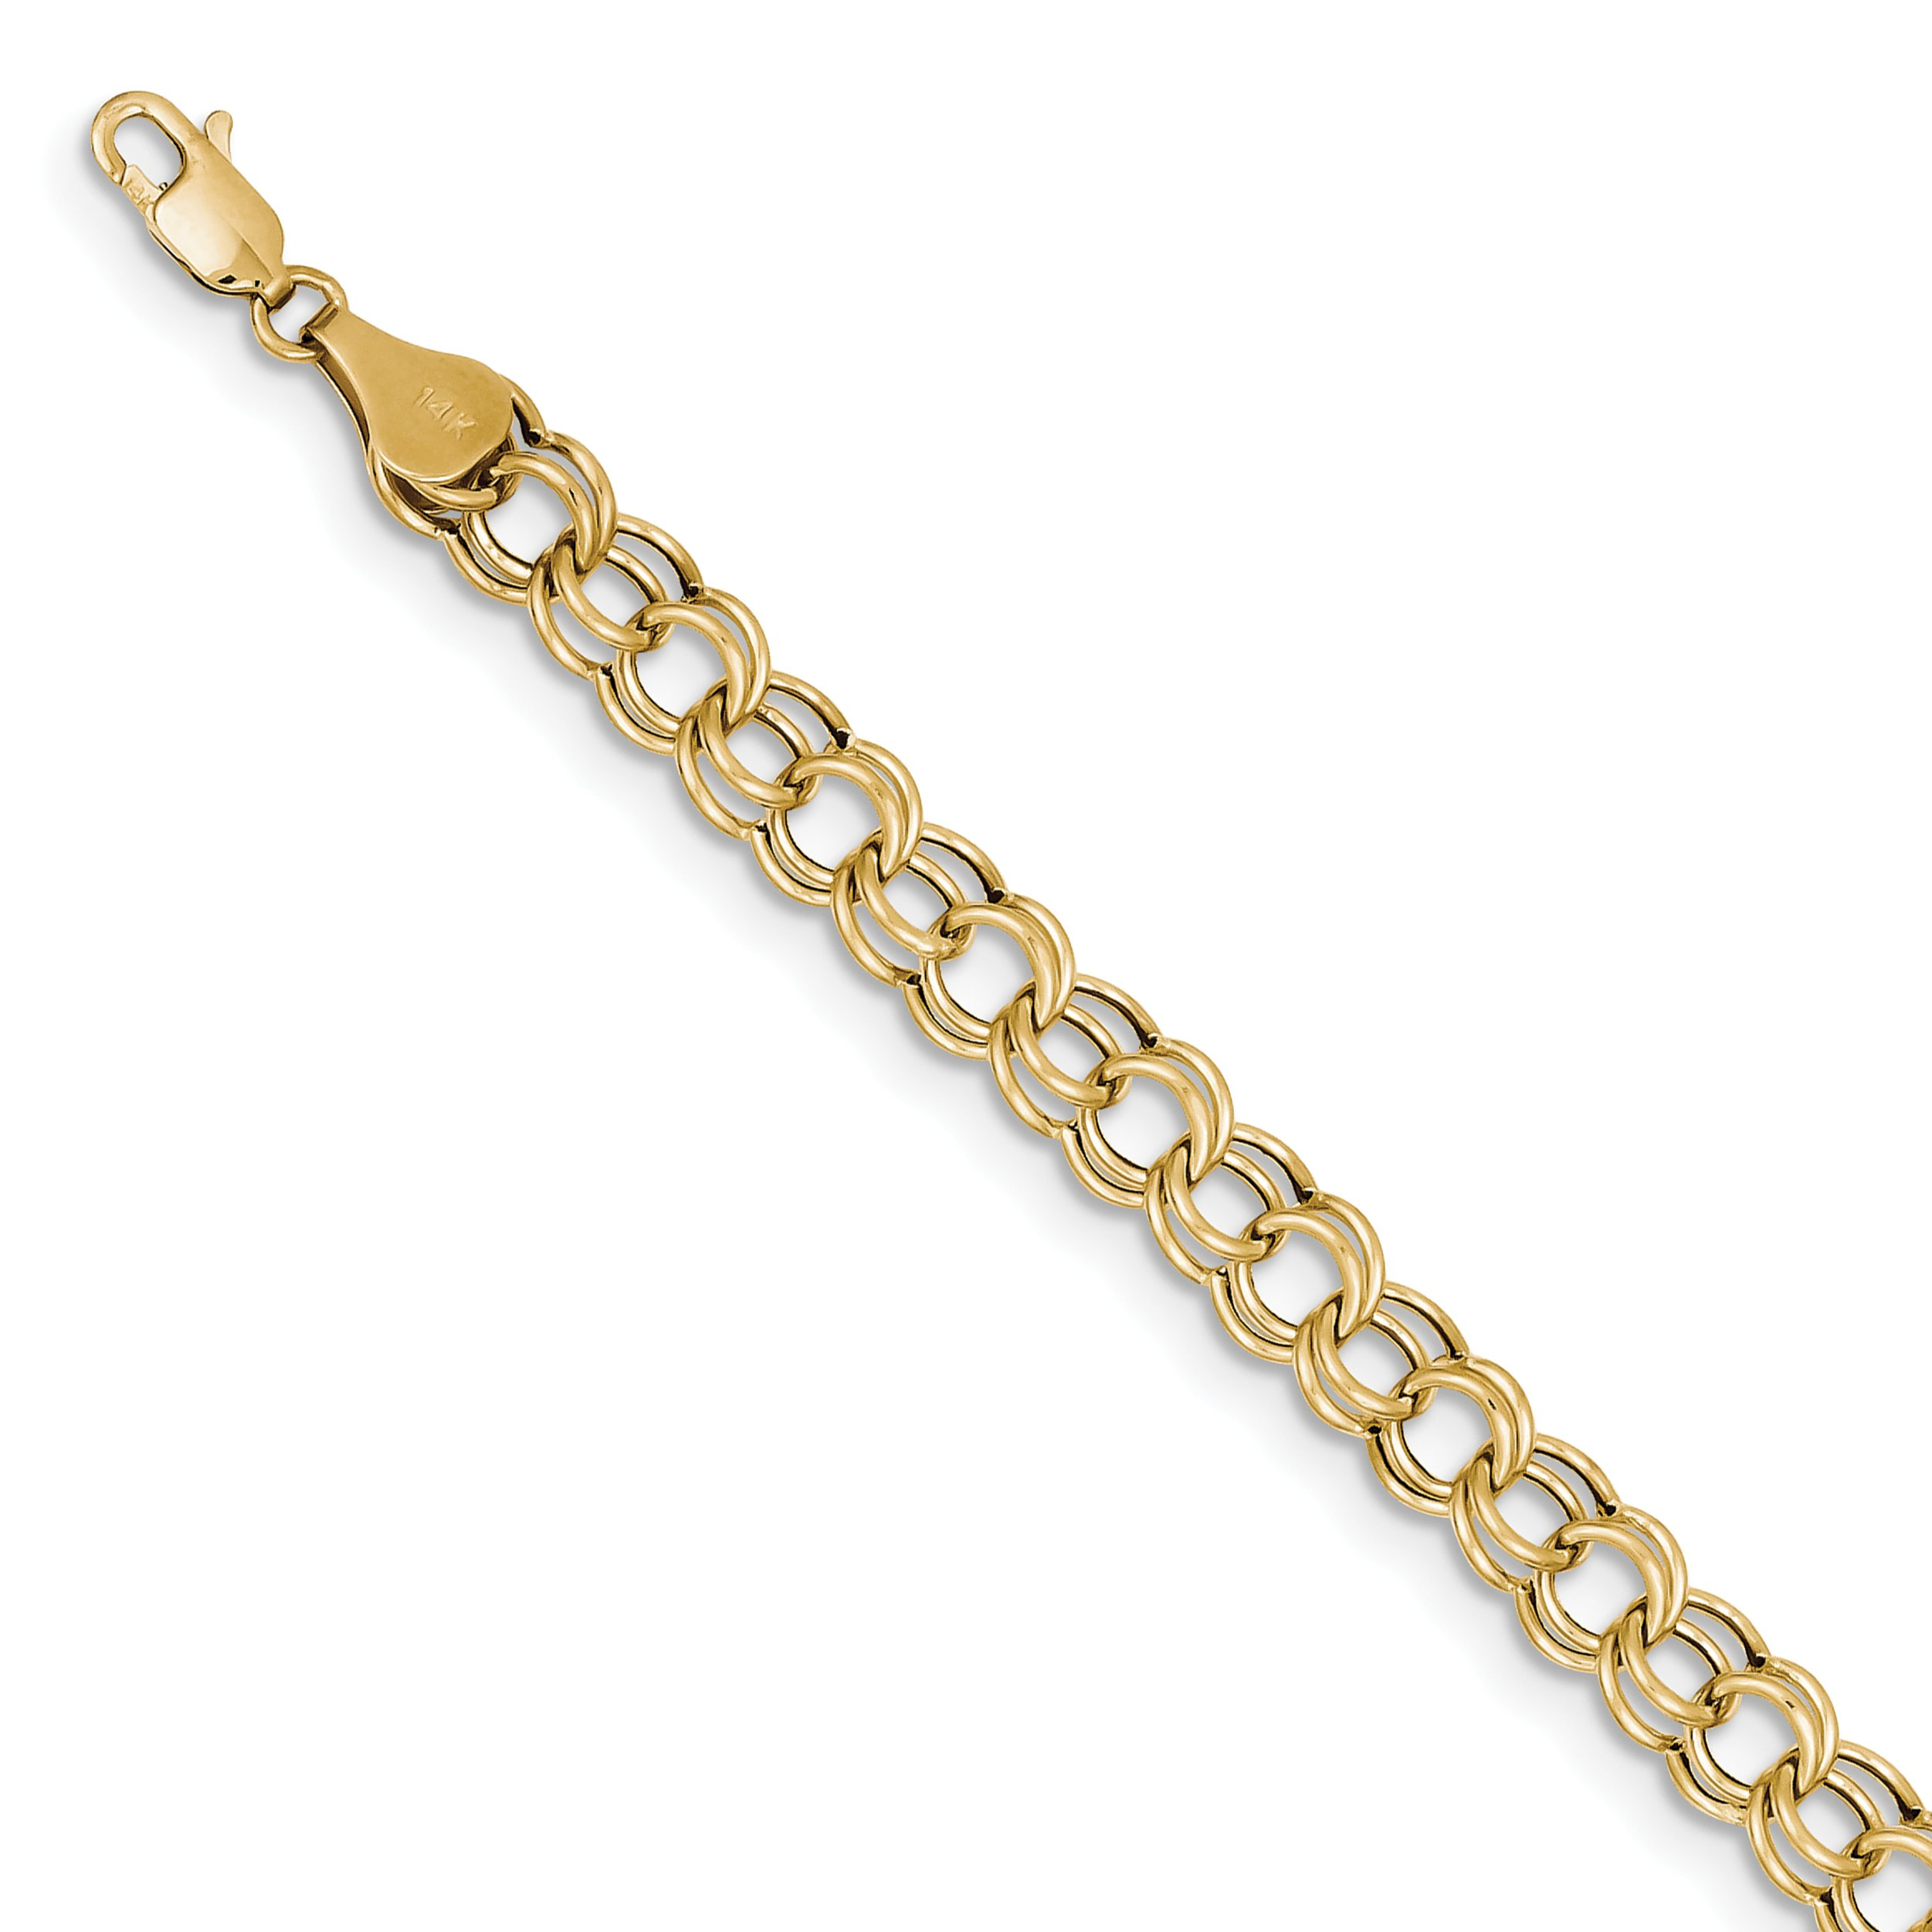 ICE CARATS 10k Yellow Gold Double Link Charm Bracelet 7 Inch Fine Jewelry Gift For Women Heart